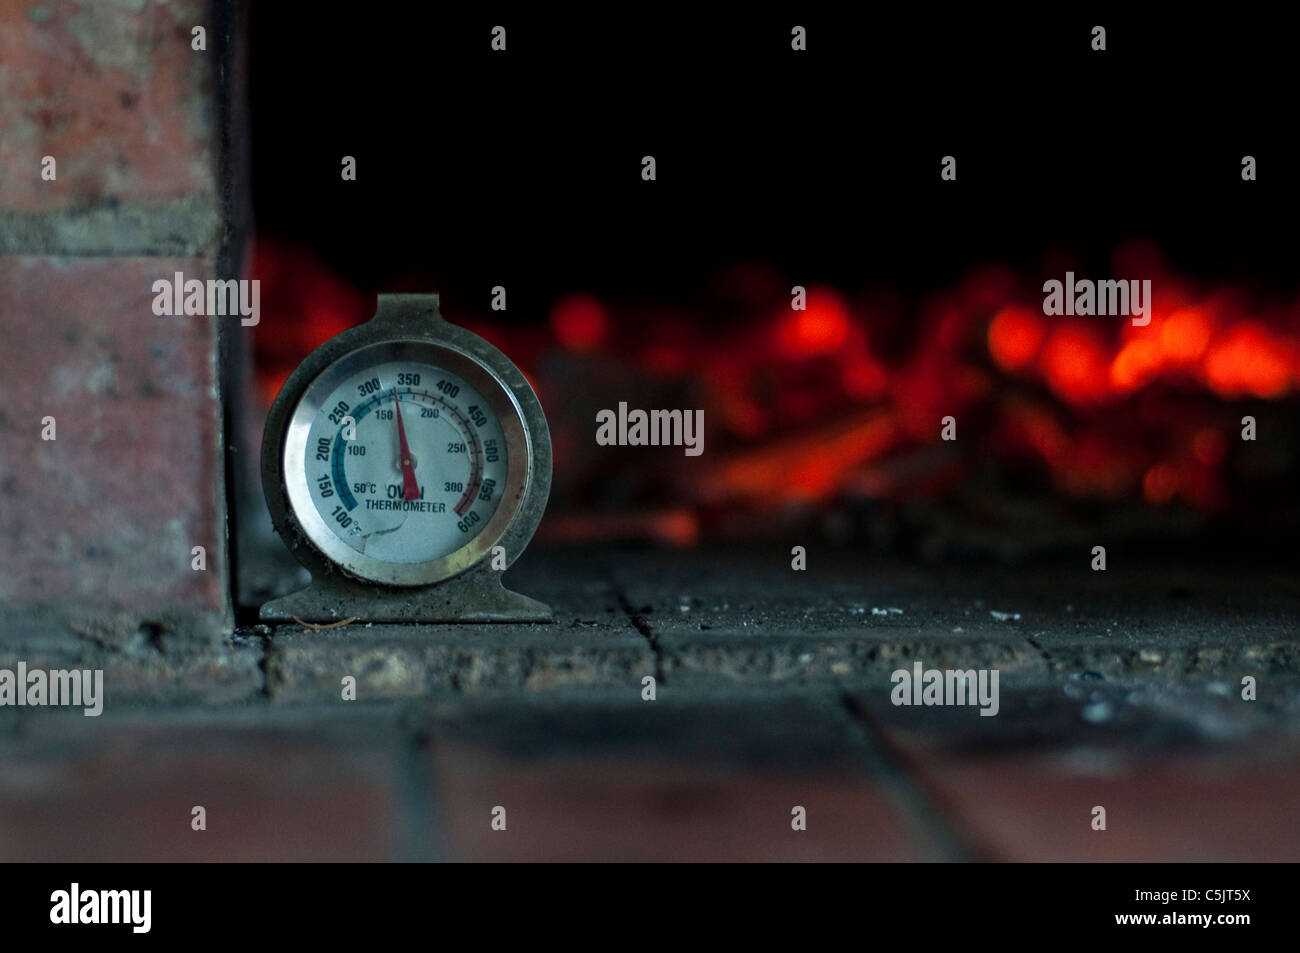 Glowing embers stockfotos glowing embers bilder alamy - Thermometer zum kochen ...